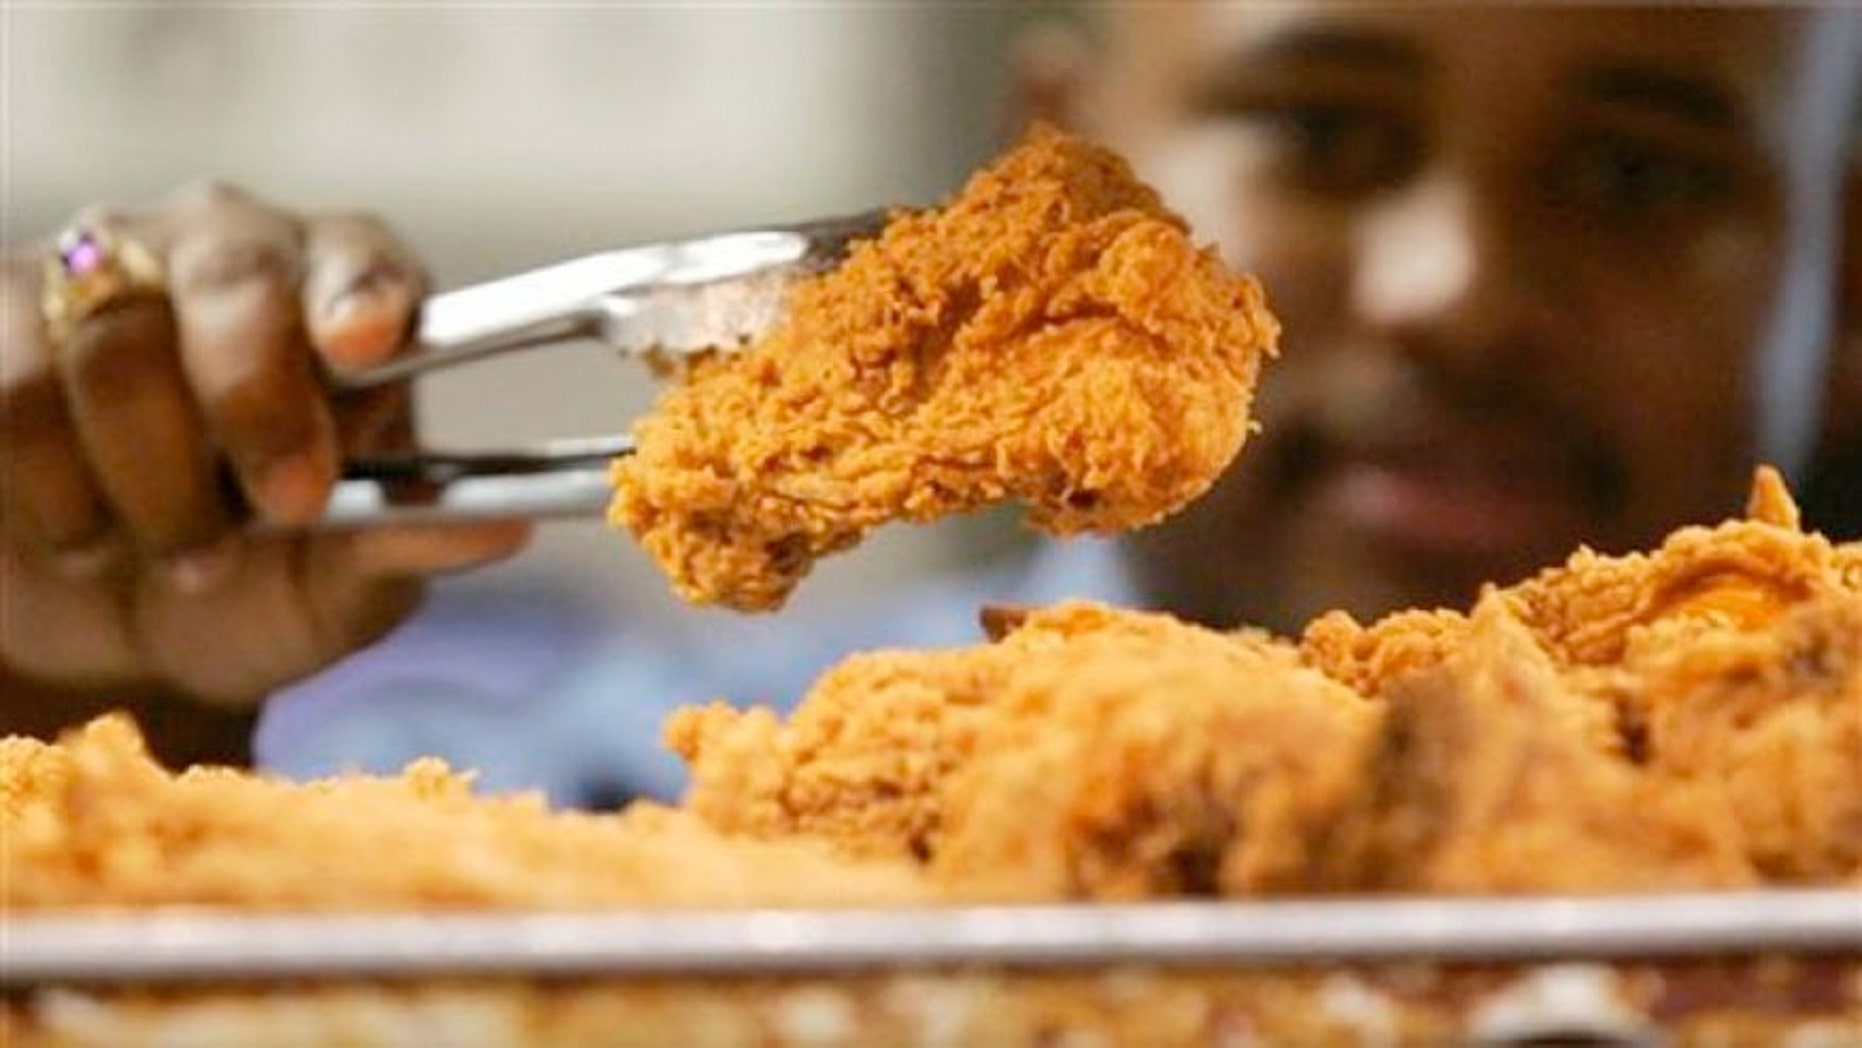 FILE: A Kentucky Fried Chicken employee uses tongs to hold up an sample of the company's trans fat-free Extra Crispy fried chicken in New York.